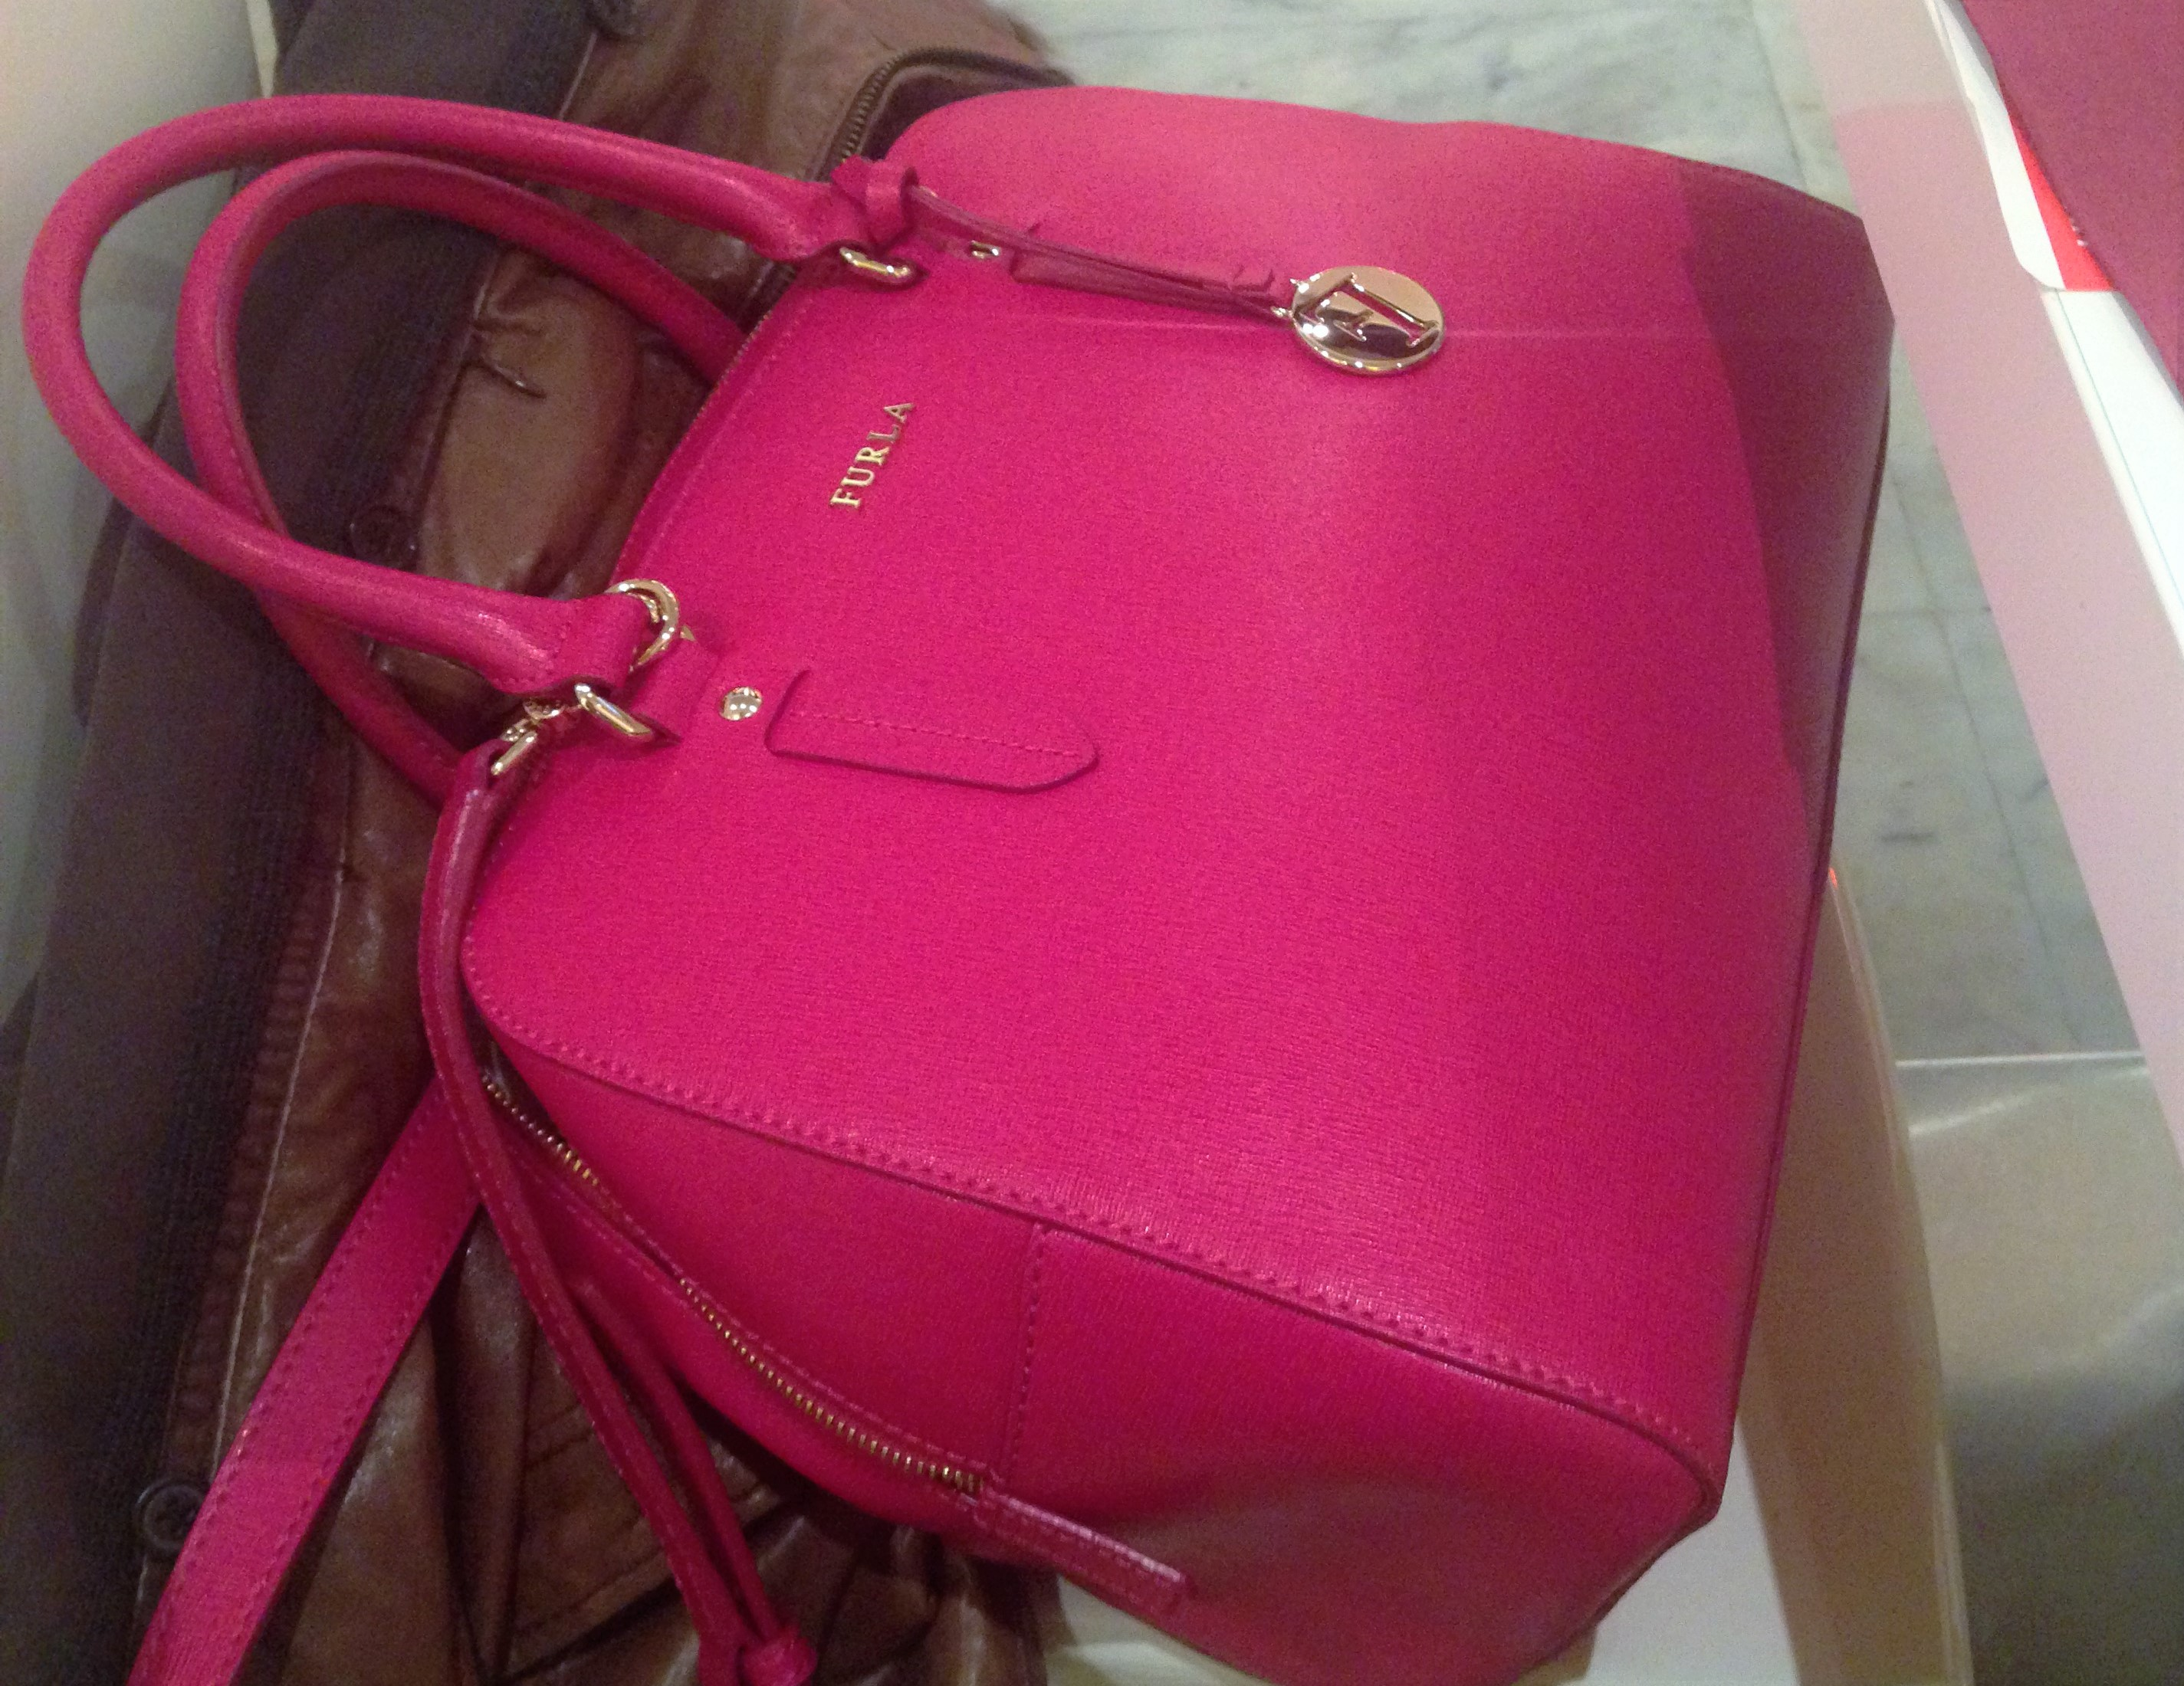 Fucsia is the new black - outlet di Furla